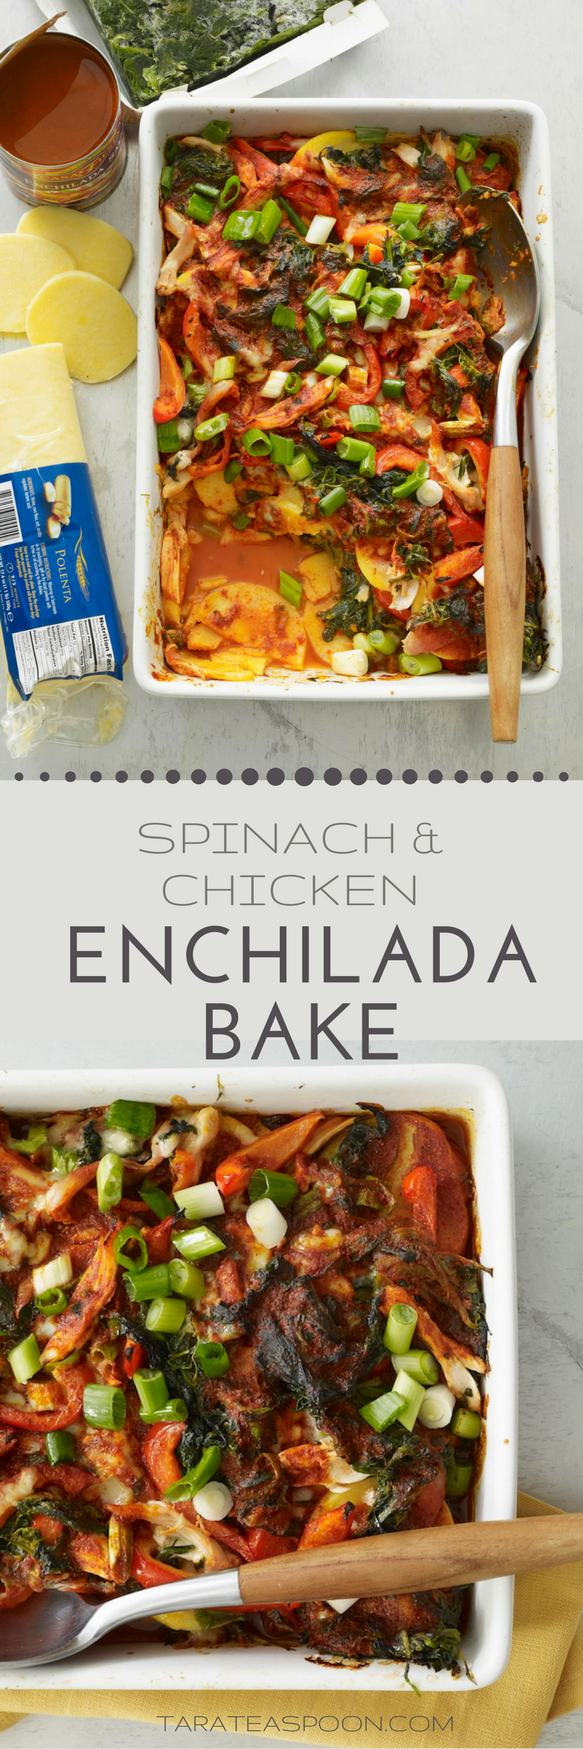 spinach and chicken enchilada casserole